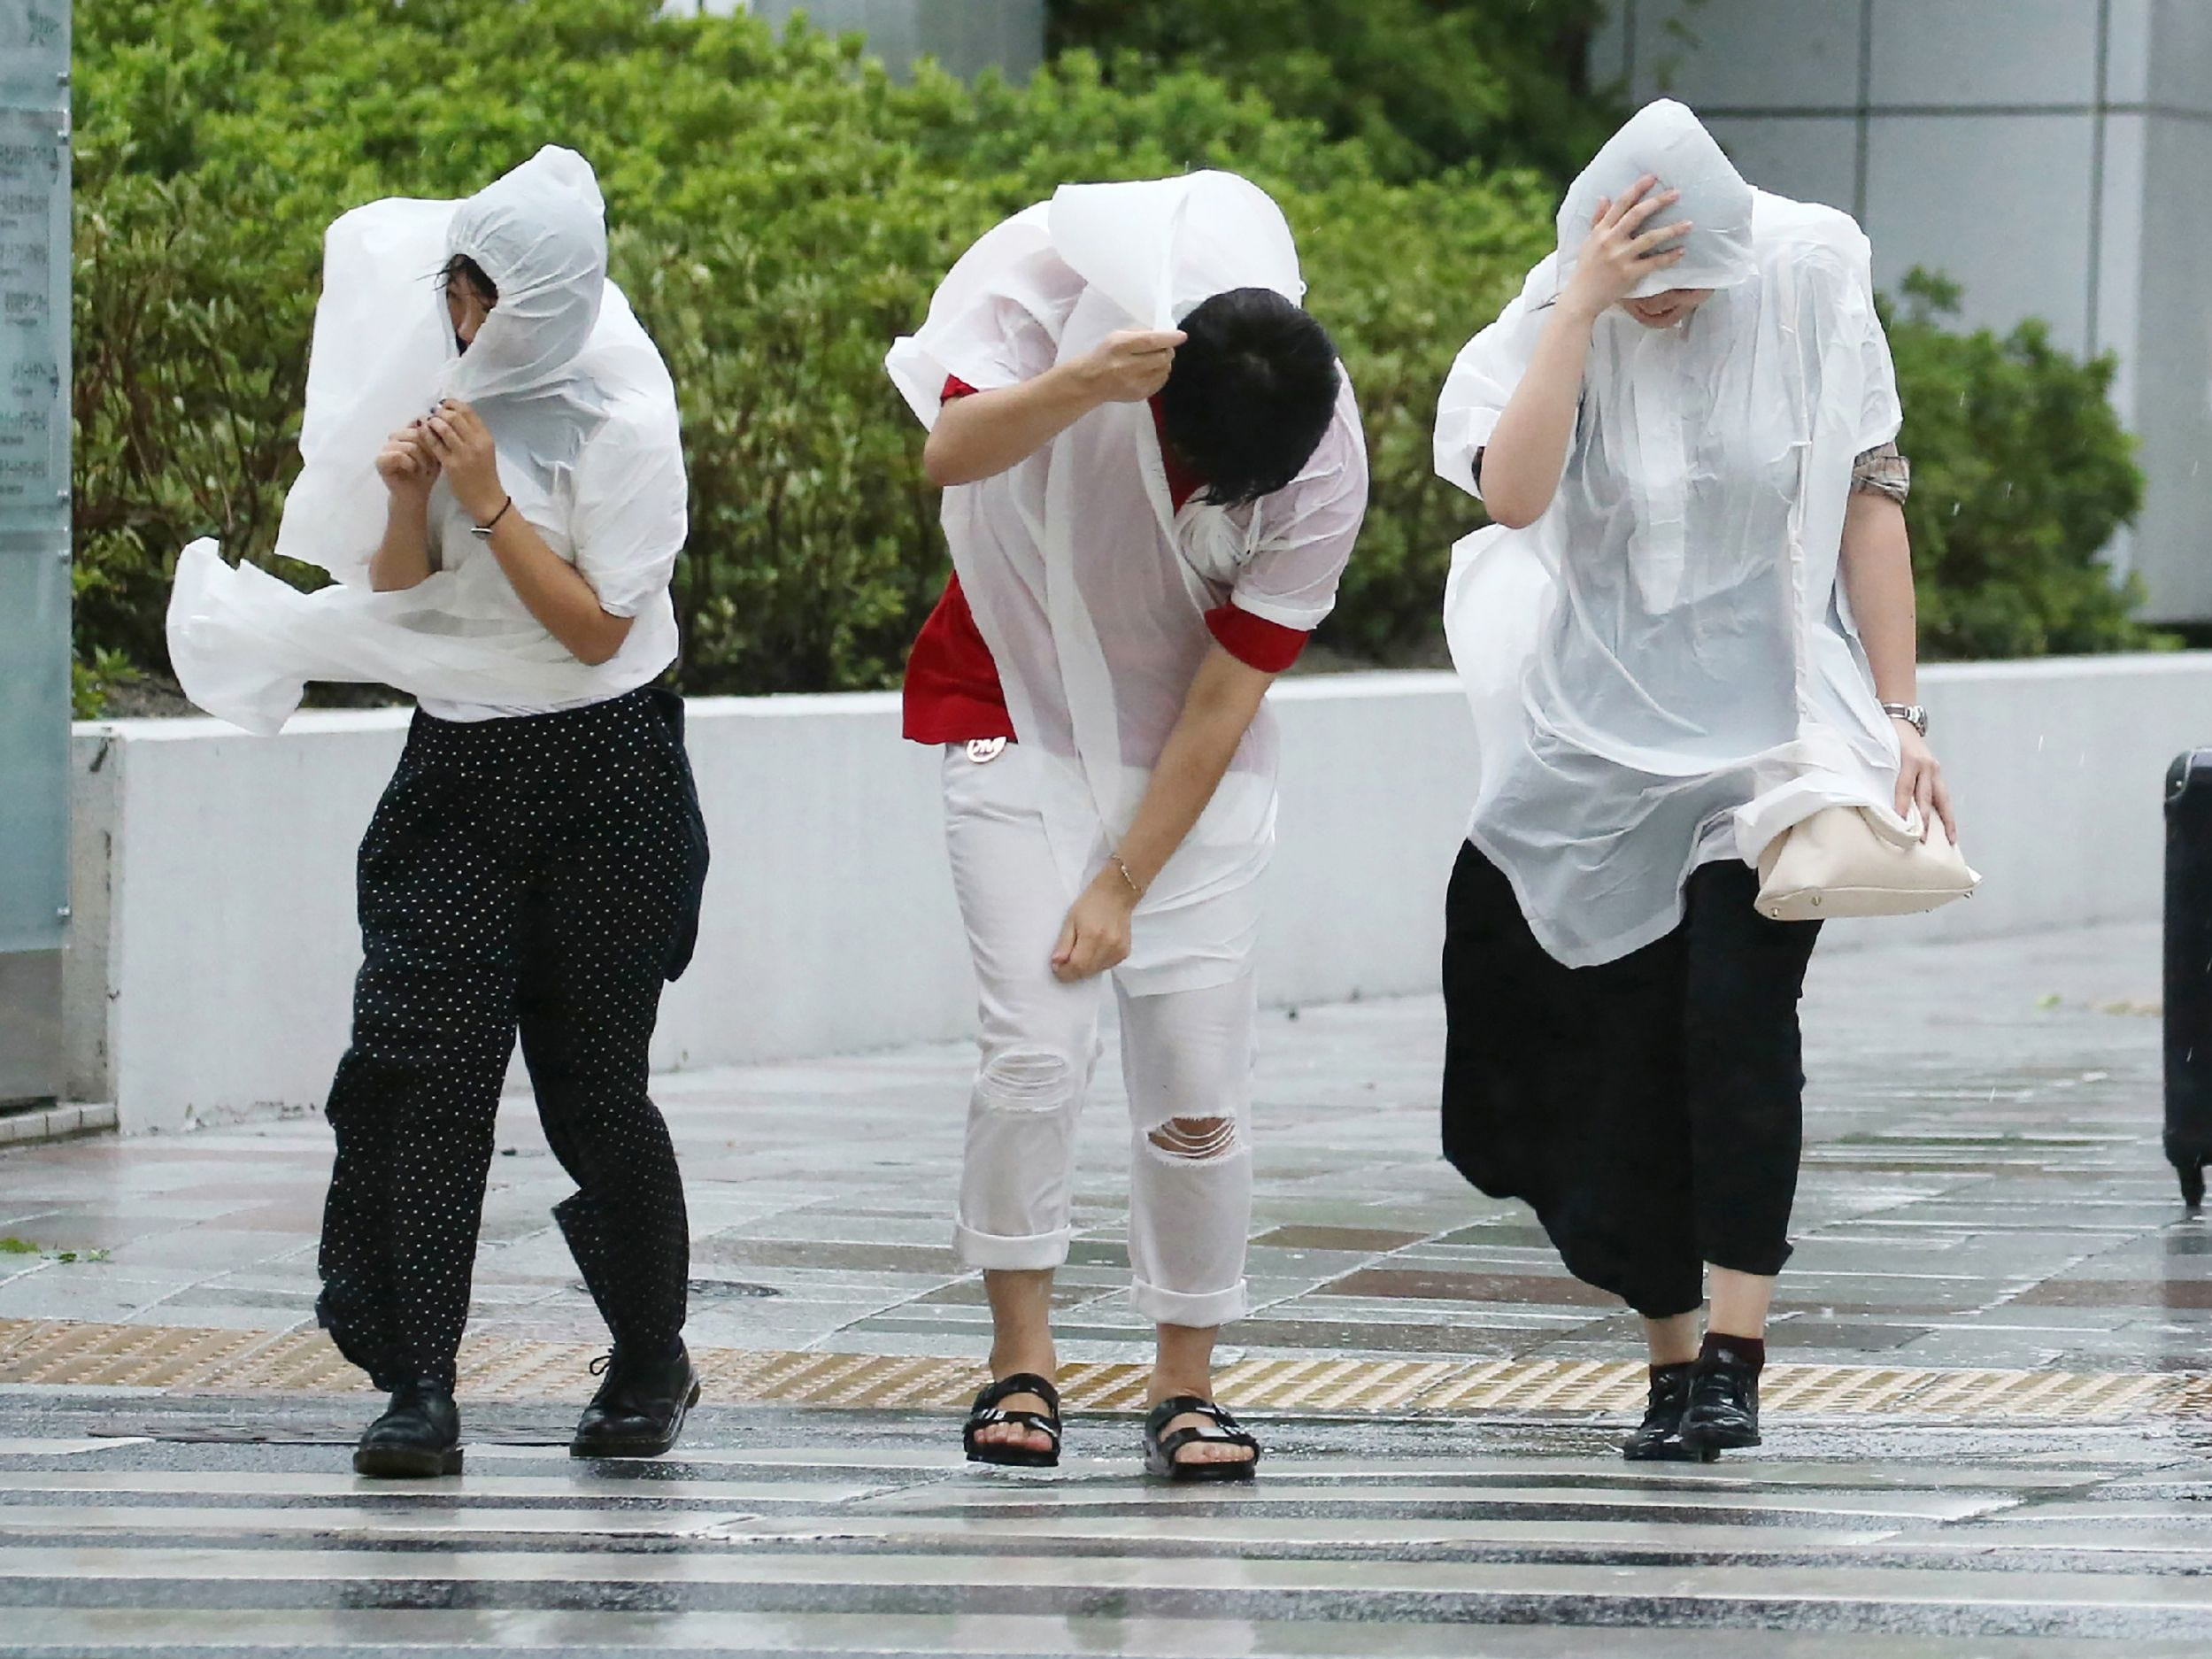 TOPSHOT - People walk against strong winds in Nagoya on September 4, 2018, as Typhoon Jebi made landfall around midday in southwestern Japan. - The strongest typhoon to hit Japan in 25 years made landfall on September 4, the country's weather agency said, bringing violent winds and heavy rainfall that prompted evacuation warnings. (Photo by JIJI PRESS / JIJI PRESS / AFP) / Japan OUTJIJI PRESS/AFP/Getty Images ORIG FILE ID: AFP_18U1S9